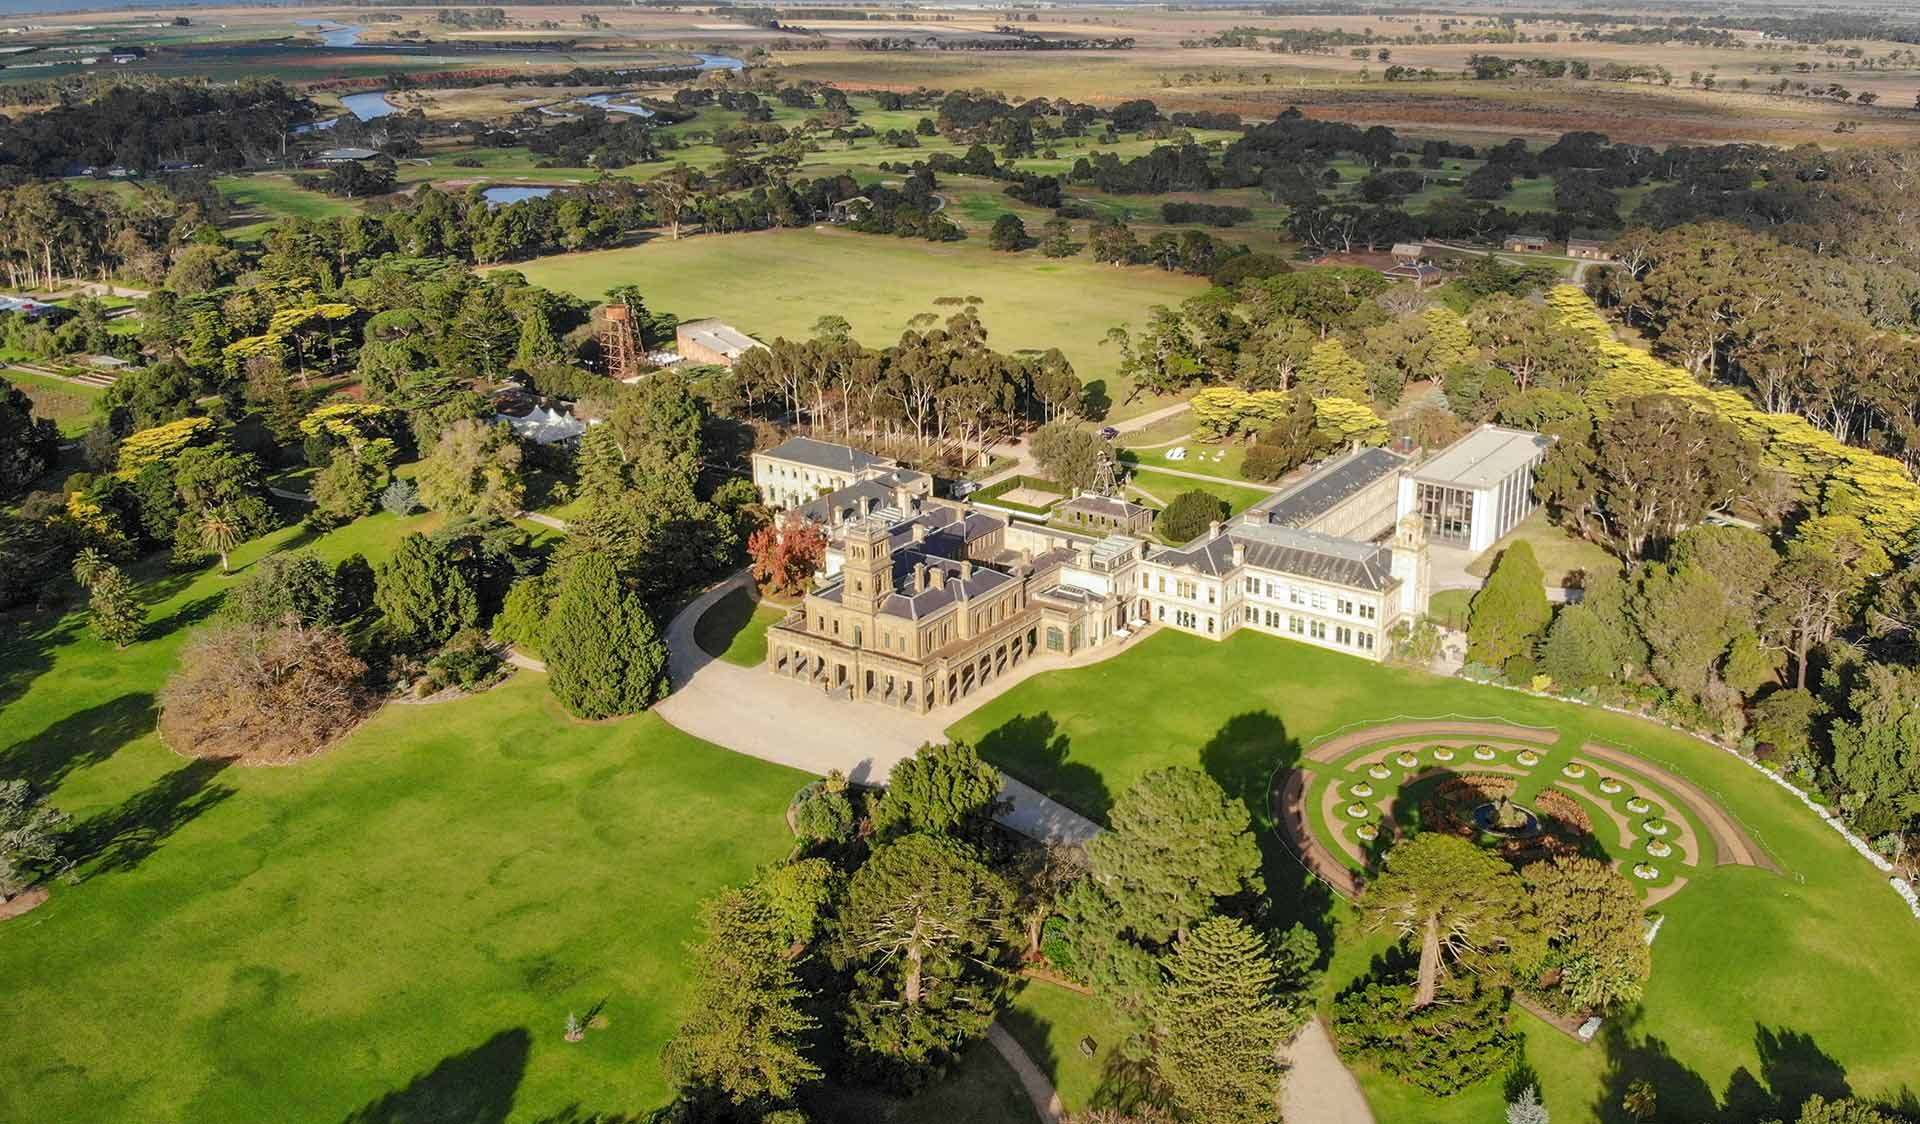 An aerial view of Werribee Mansion and its surrounding gardens.